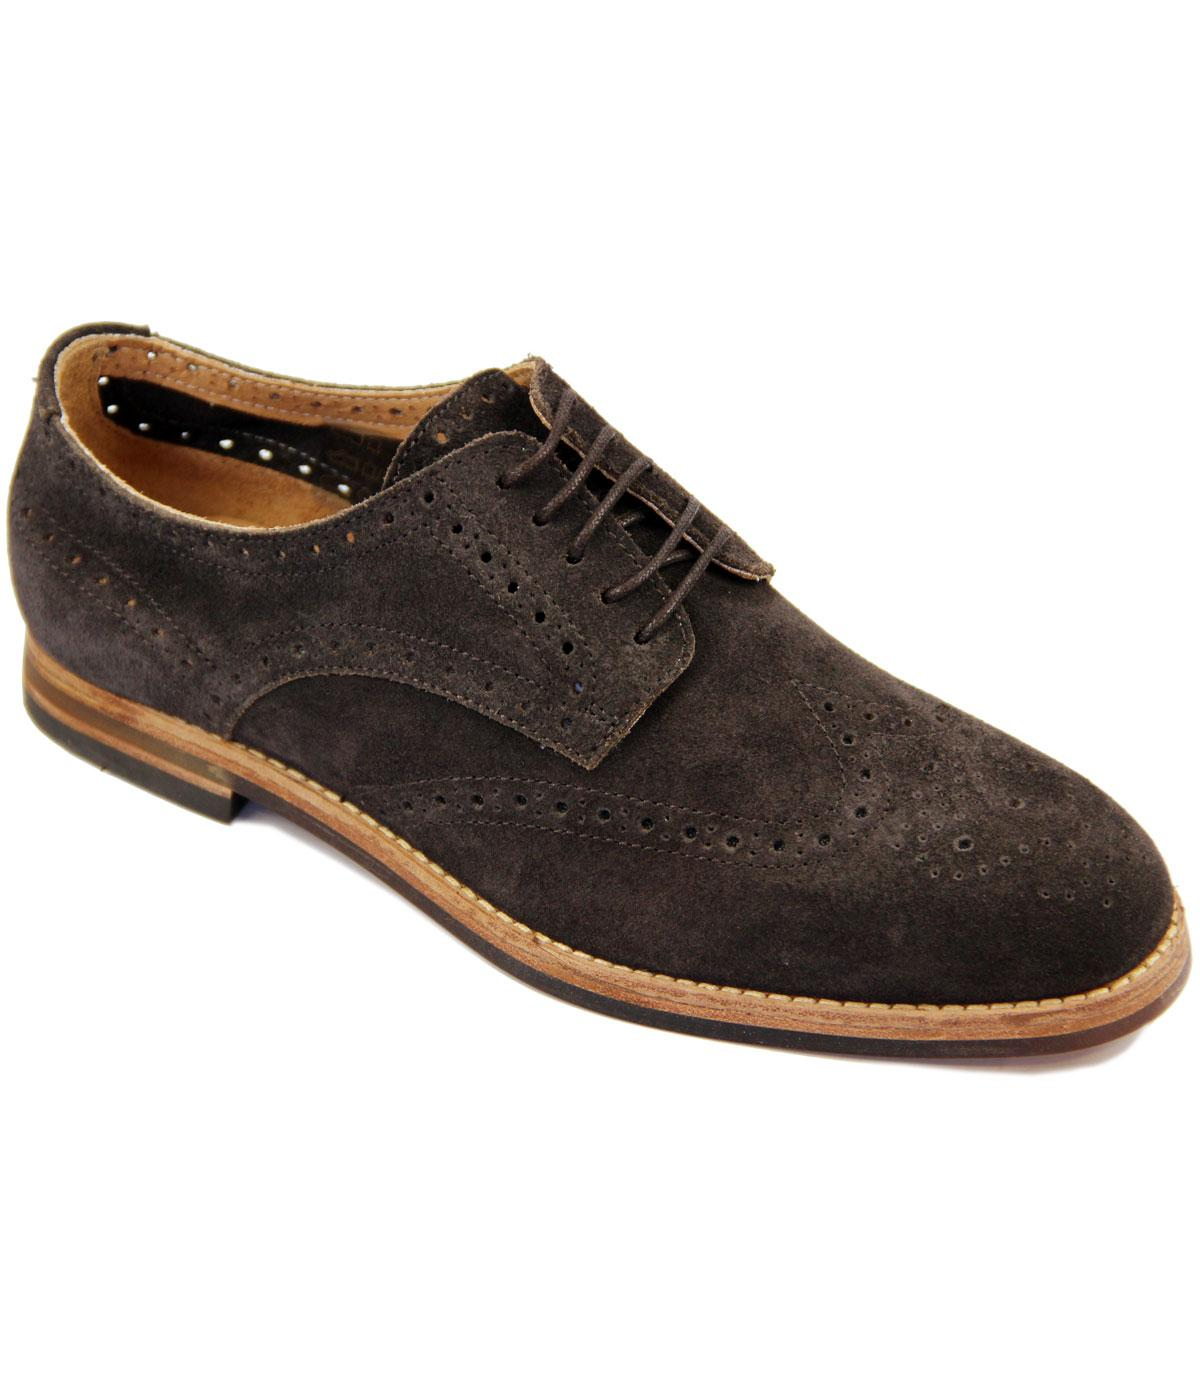 Harmer H by HUDSON Retro Mod Suede Brogue Shoes